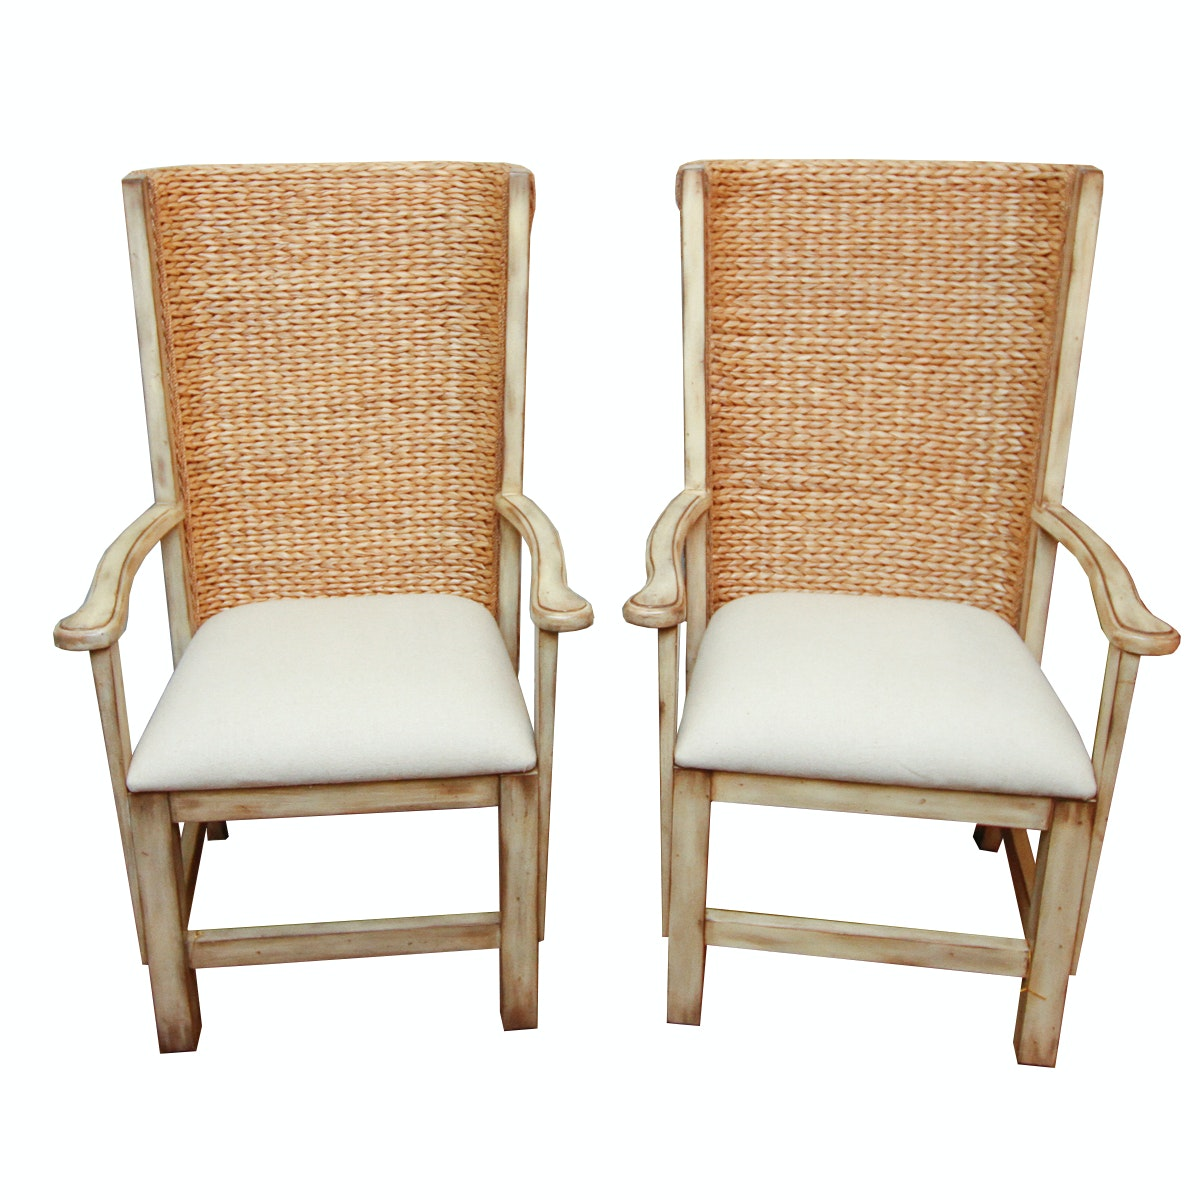 Hooker Furniture Wicker Back Armchairs